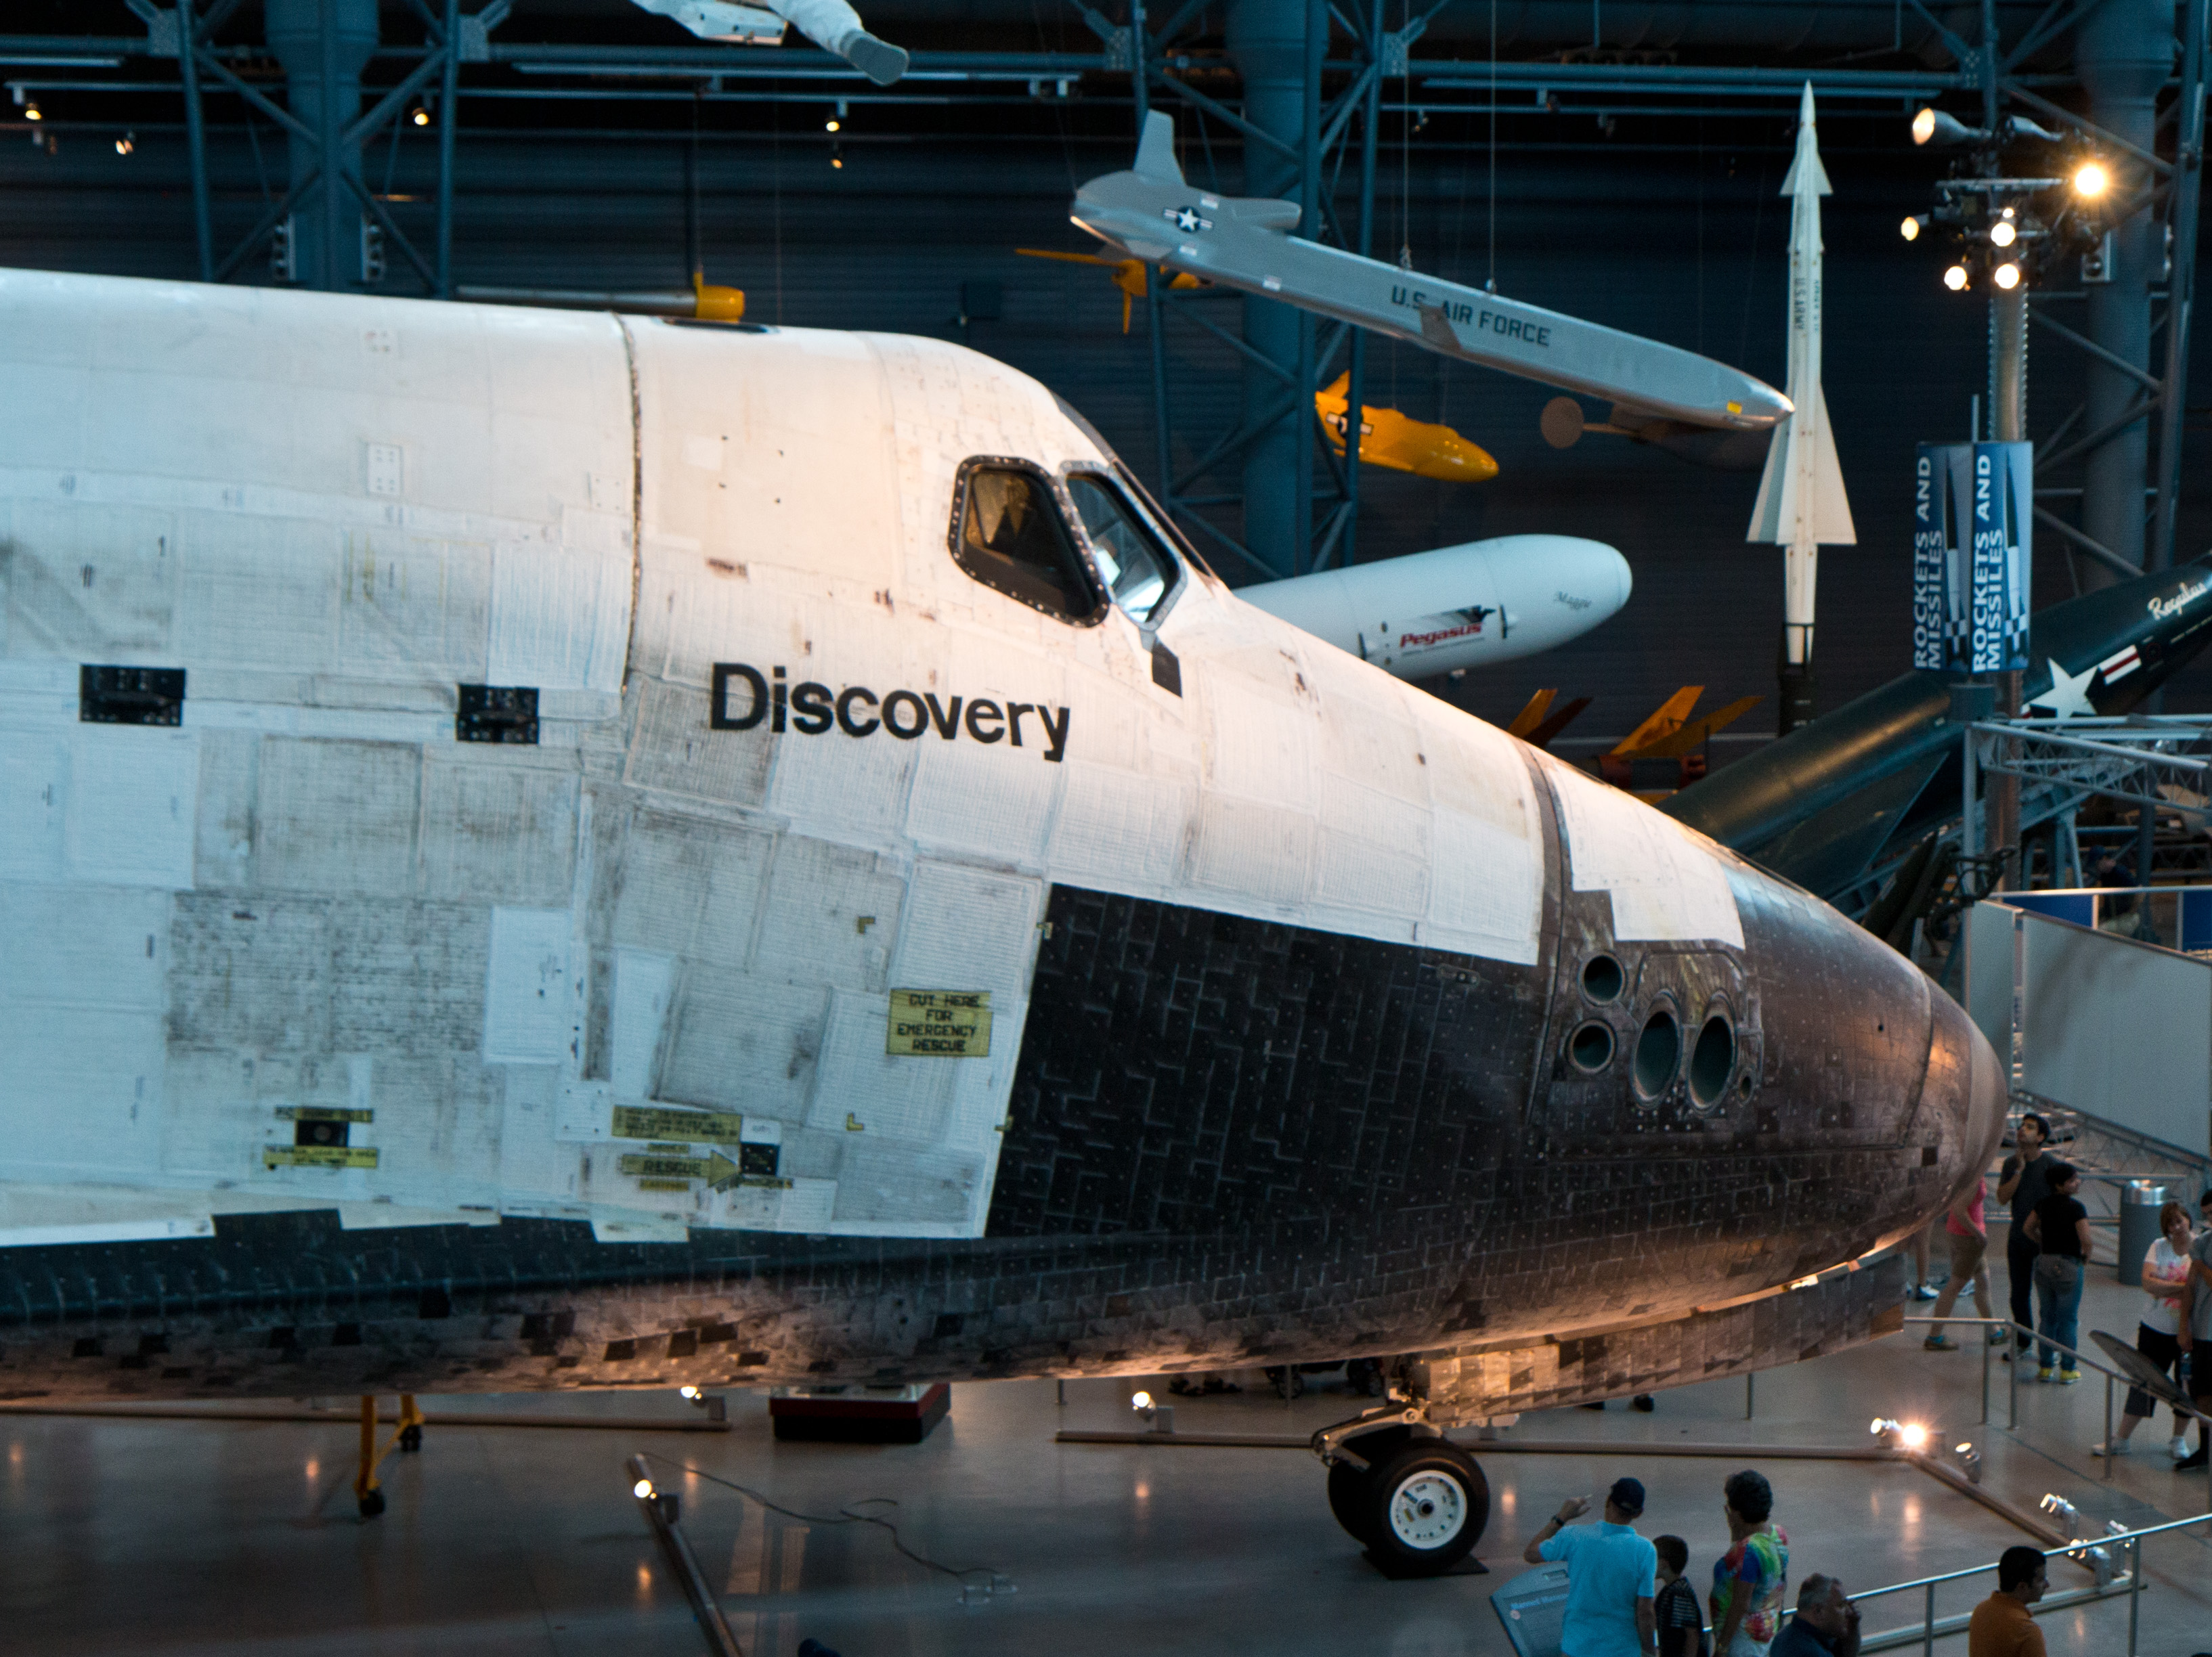 space shuttle discovery blow up - photo #45